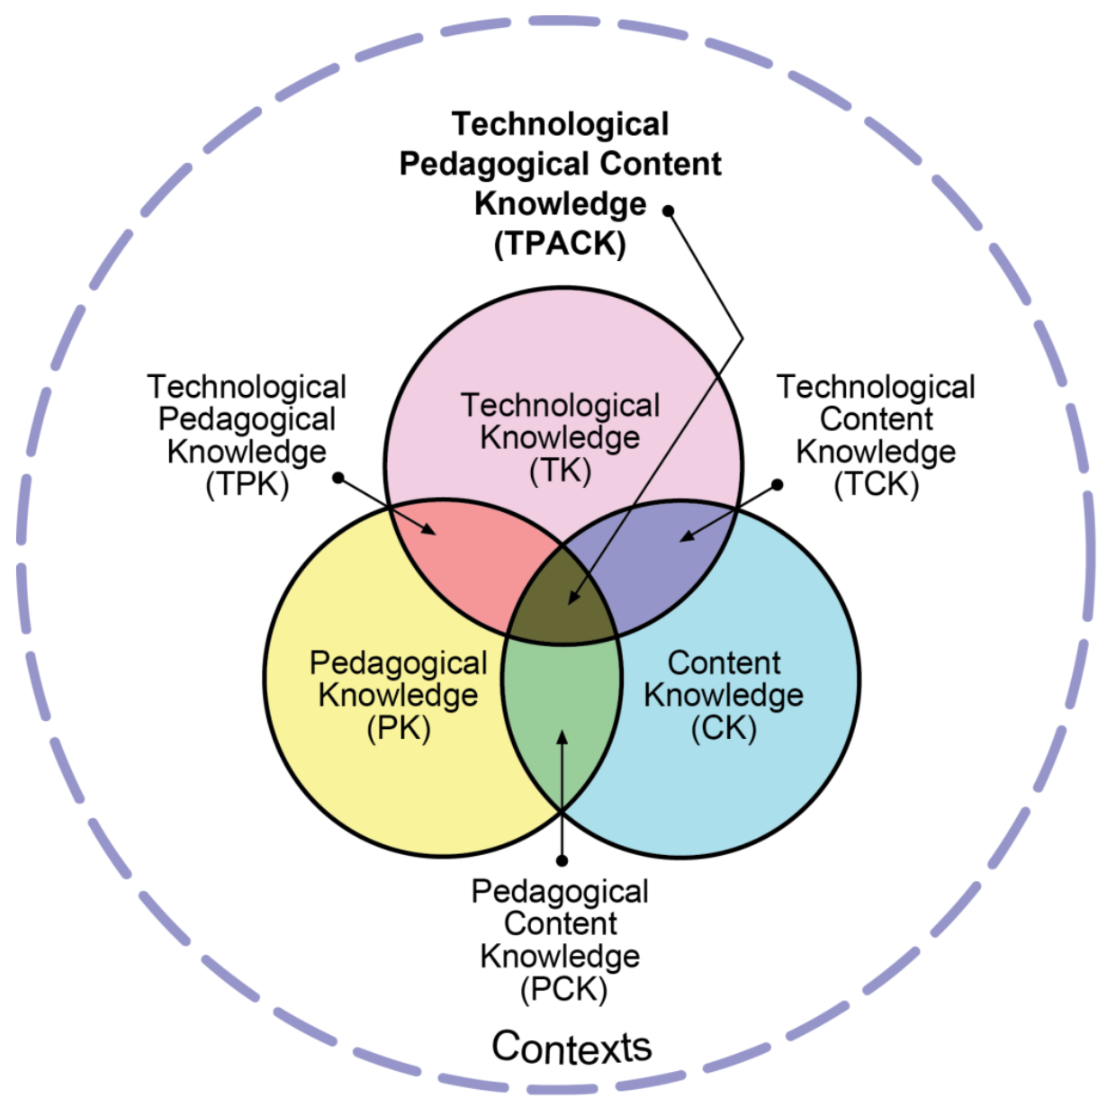 Figure 1. Technological Pedagogical Content Knowledge (TPACK) framework. Reproduced with permission of the publisher, © 2012 tpack.org.